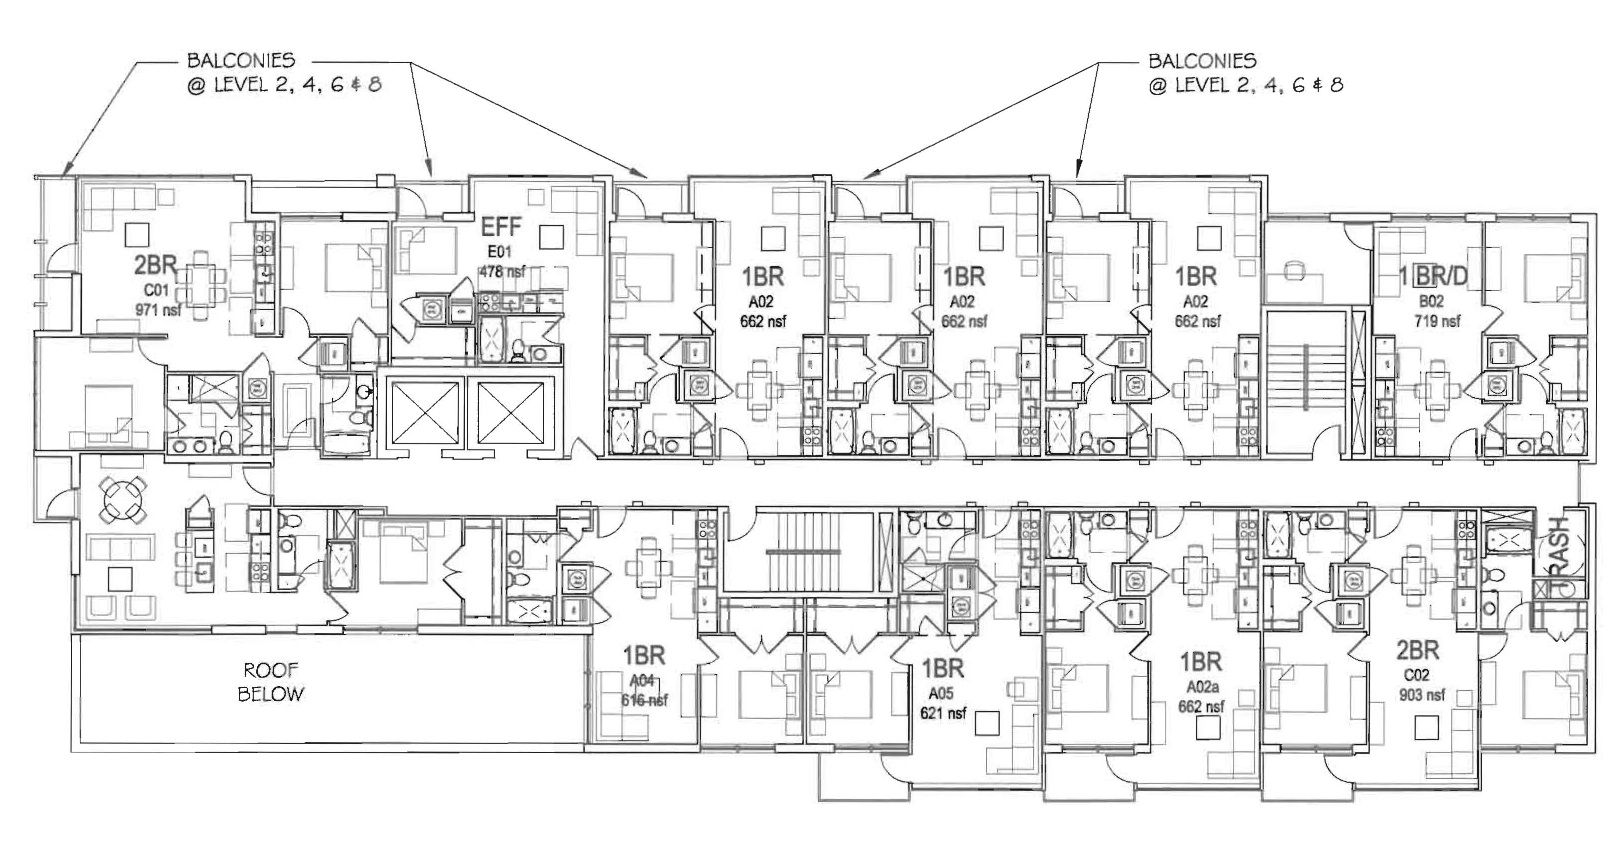 Apartment floor plans for mirym 39 s apartment building 7 for Apartment building plans 6 units